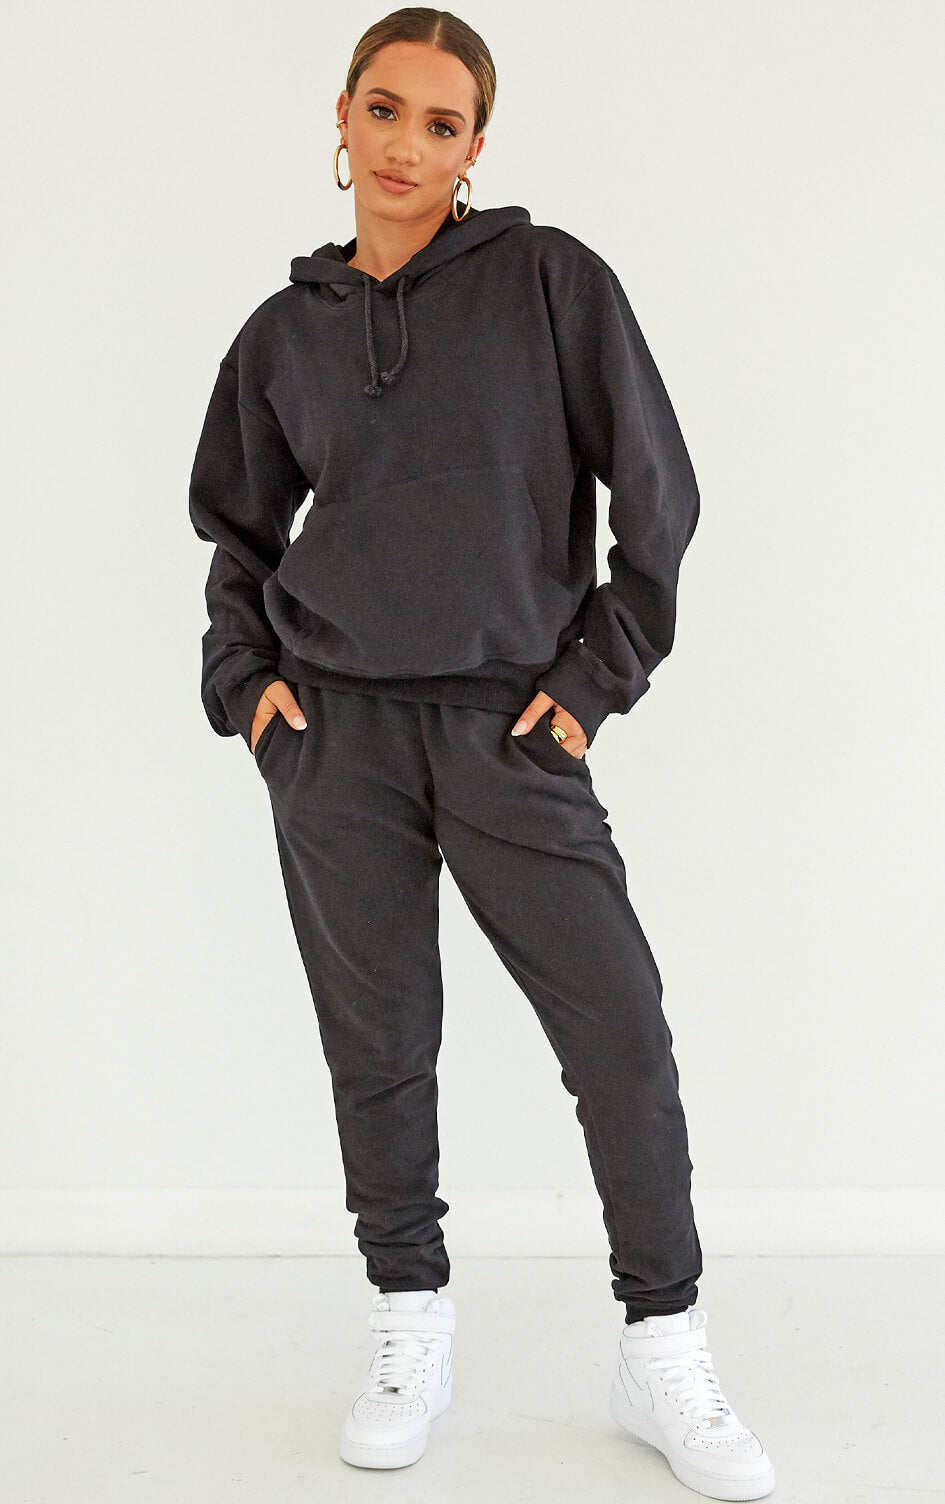 shop-dana-scott-fall-collection-black-fleece-joggers-sweatpants